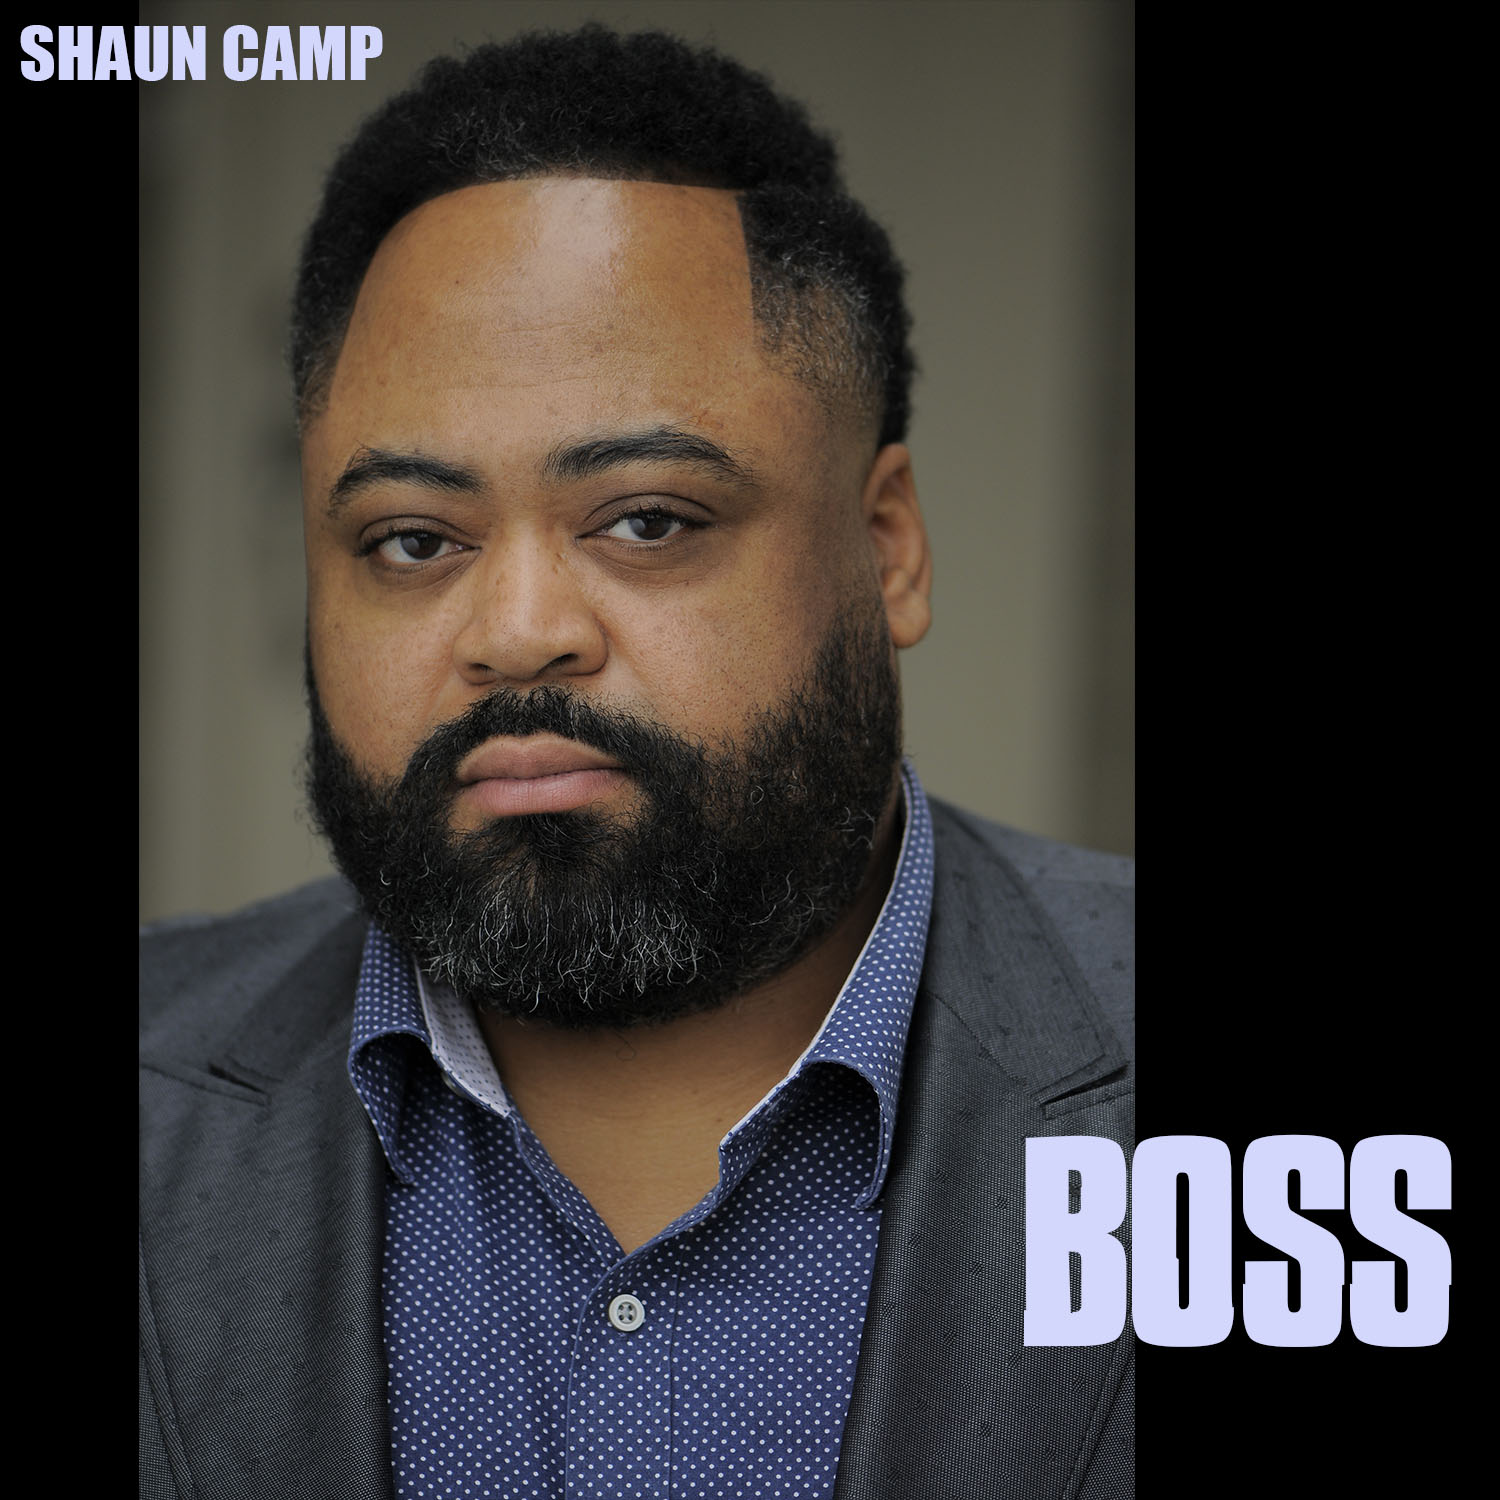 Shaun Camp stars as BIG WOKE - Born March 1, 1980, Shaun Camp is an American actor, producer, singer, and entrepreneur. He hails from his hometown Conyers, GA where he graduated from Heritage High School and excelled in football, wrestling, track, and chorus. Shaun attended Georgia Southern University in Statesboro, GA where he majored in Sports Management.Shaun can be seen in a number of films and TV shows in different background and feature roles, but is best known for his role as Big Felix the Fixer in the controversial indie cult film Whitefolks, in which he was also an associate producer. He enjoys comedies and crime/drama films, and rooting on his hometown Atlanta sports teams in his free time.@soultank76 on ig